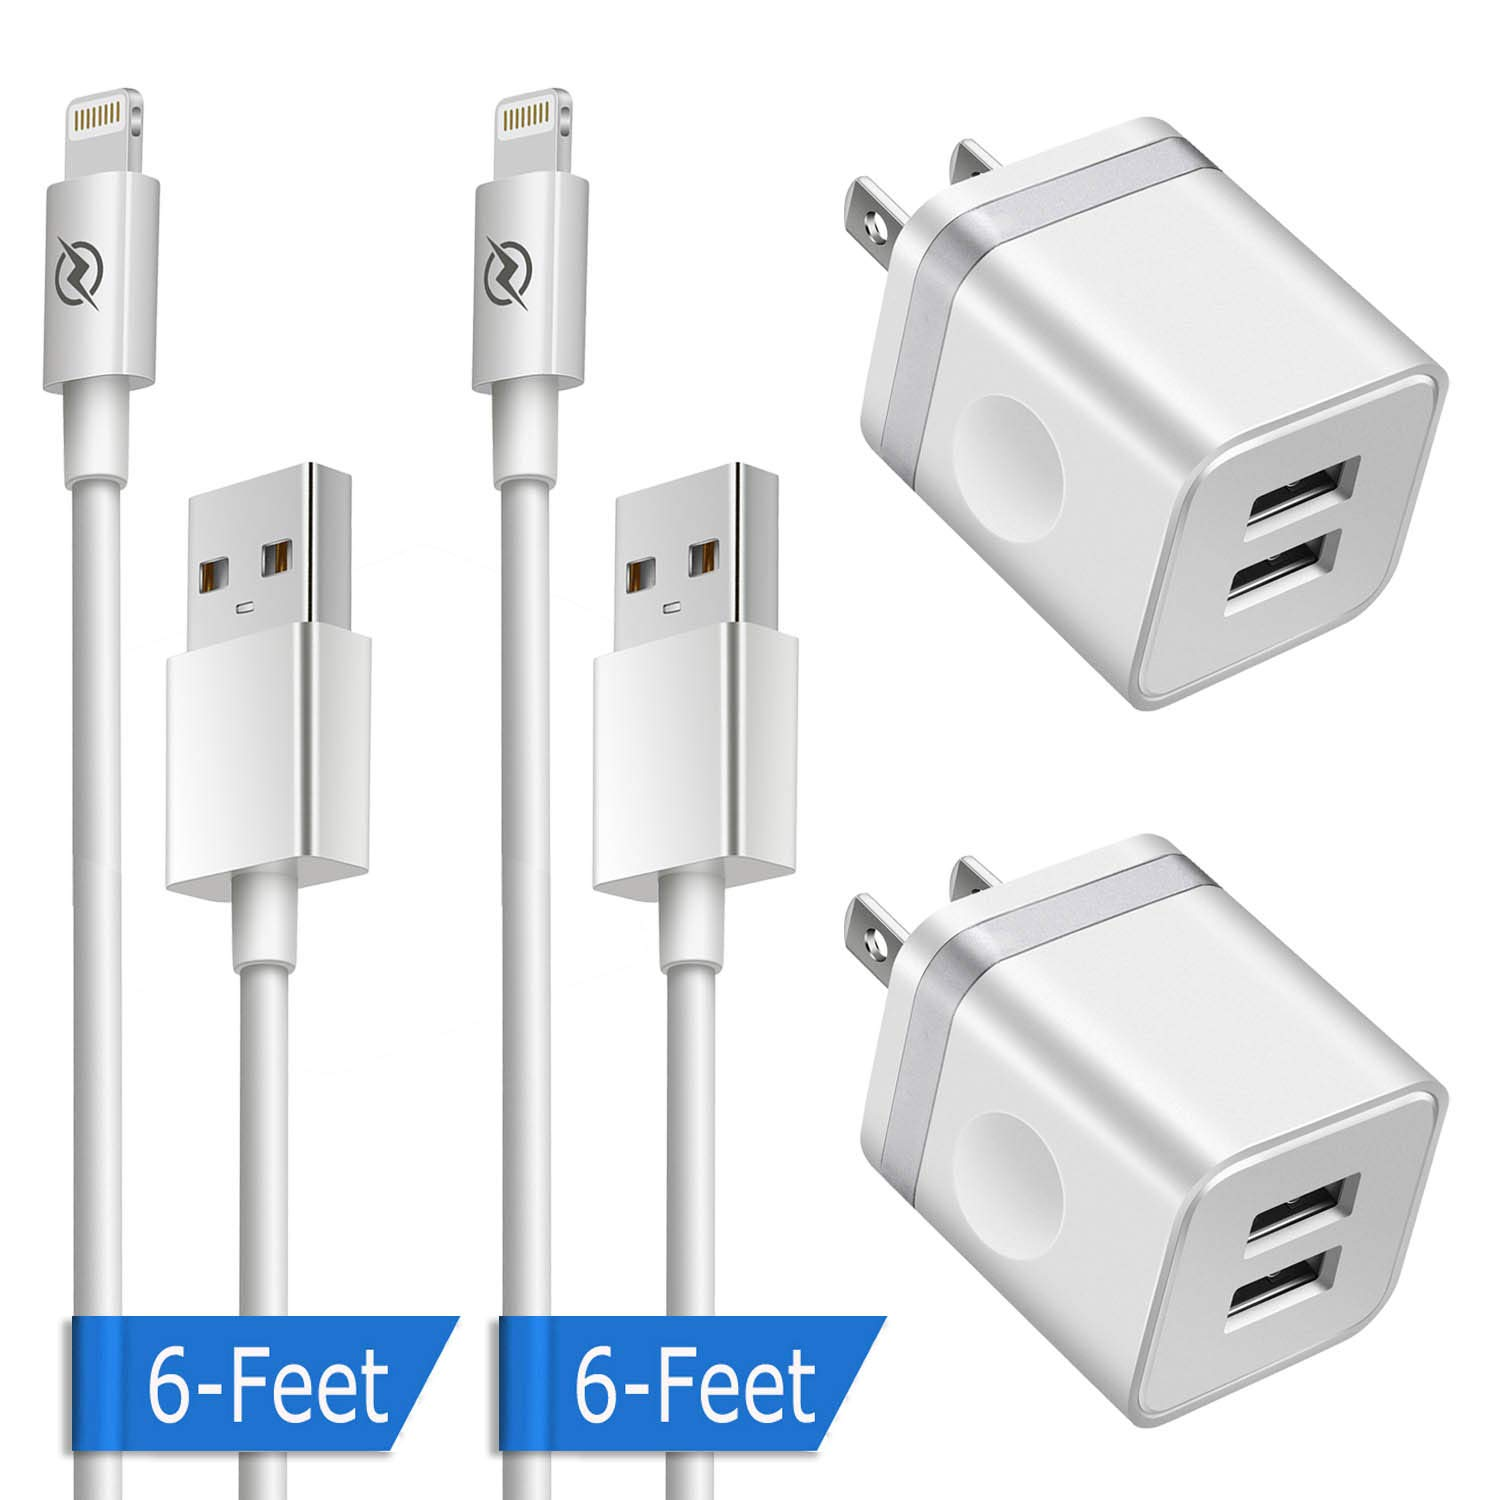 Phone Charger 6ft with Wall Plug (4in1 Pack), DENWAN 6-Foot Long Charging Cable and 2.1A/5V Dual Port USB Wall Block Cube Compatible with Phone XS/XR/X 8/7/6/Plus SE/5S/5C (UL Certified) by DENWAN